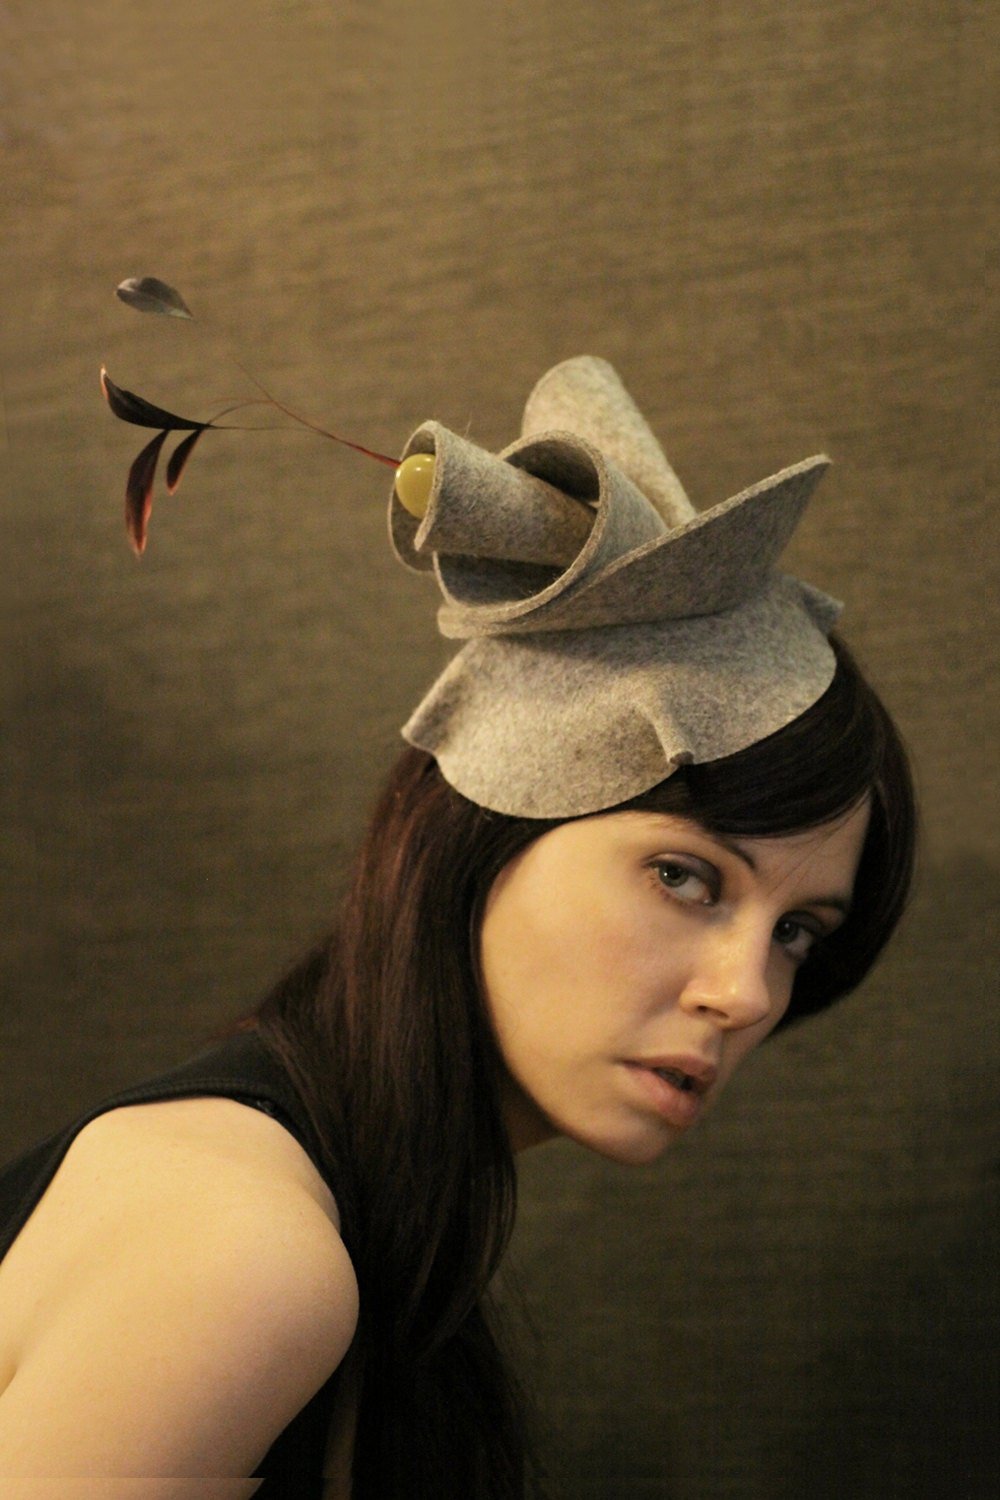 Sculptural Grey Felt Hat With Feathers-Architectonic Series